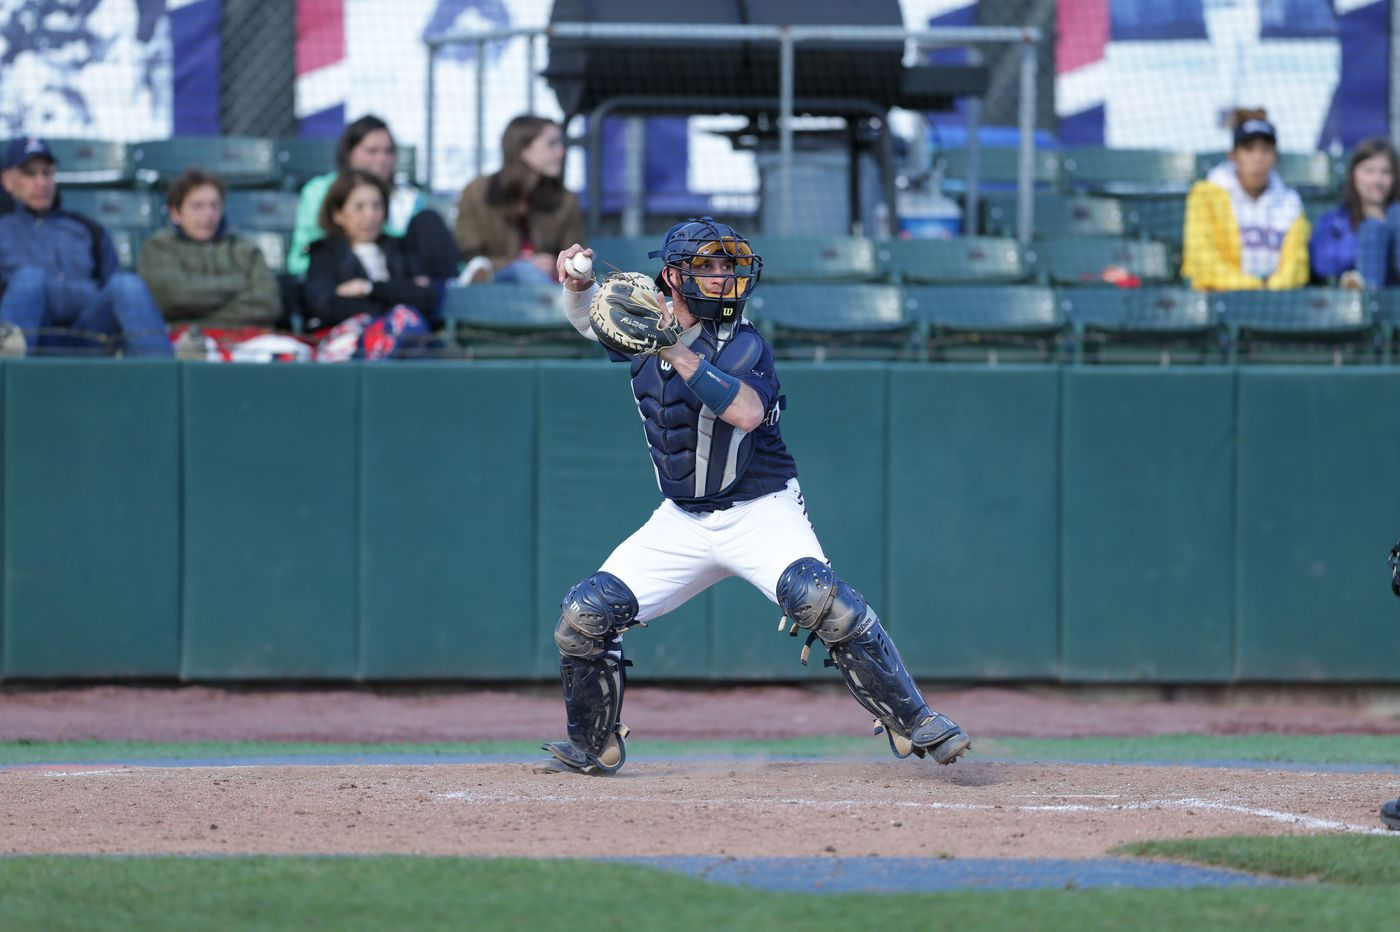 Penn catcher Matt O'Neill looking to put business world on hold after being drafted by Mets